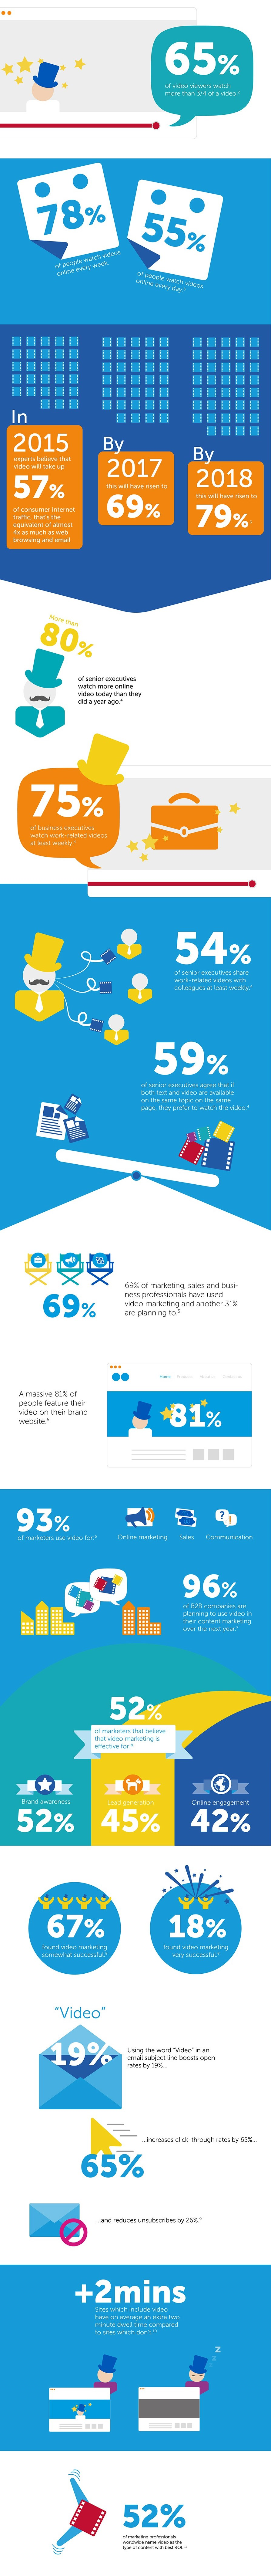 year-of-video-marketing - infographic